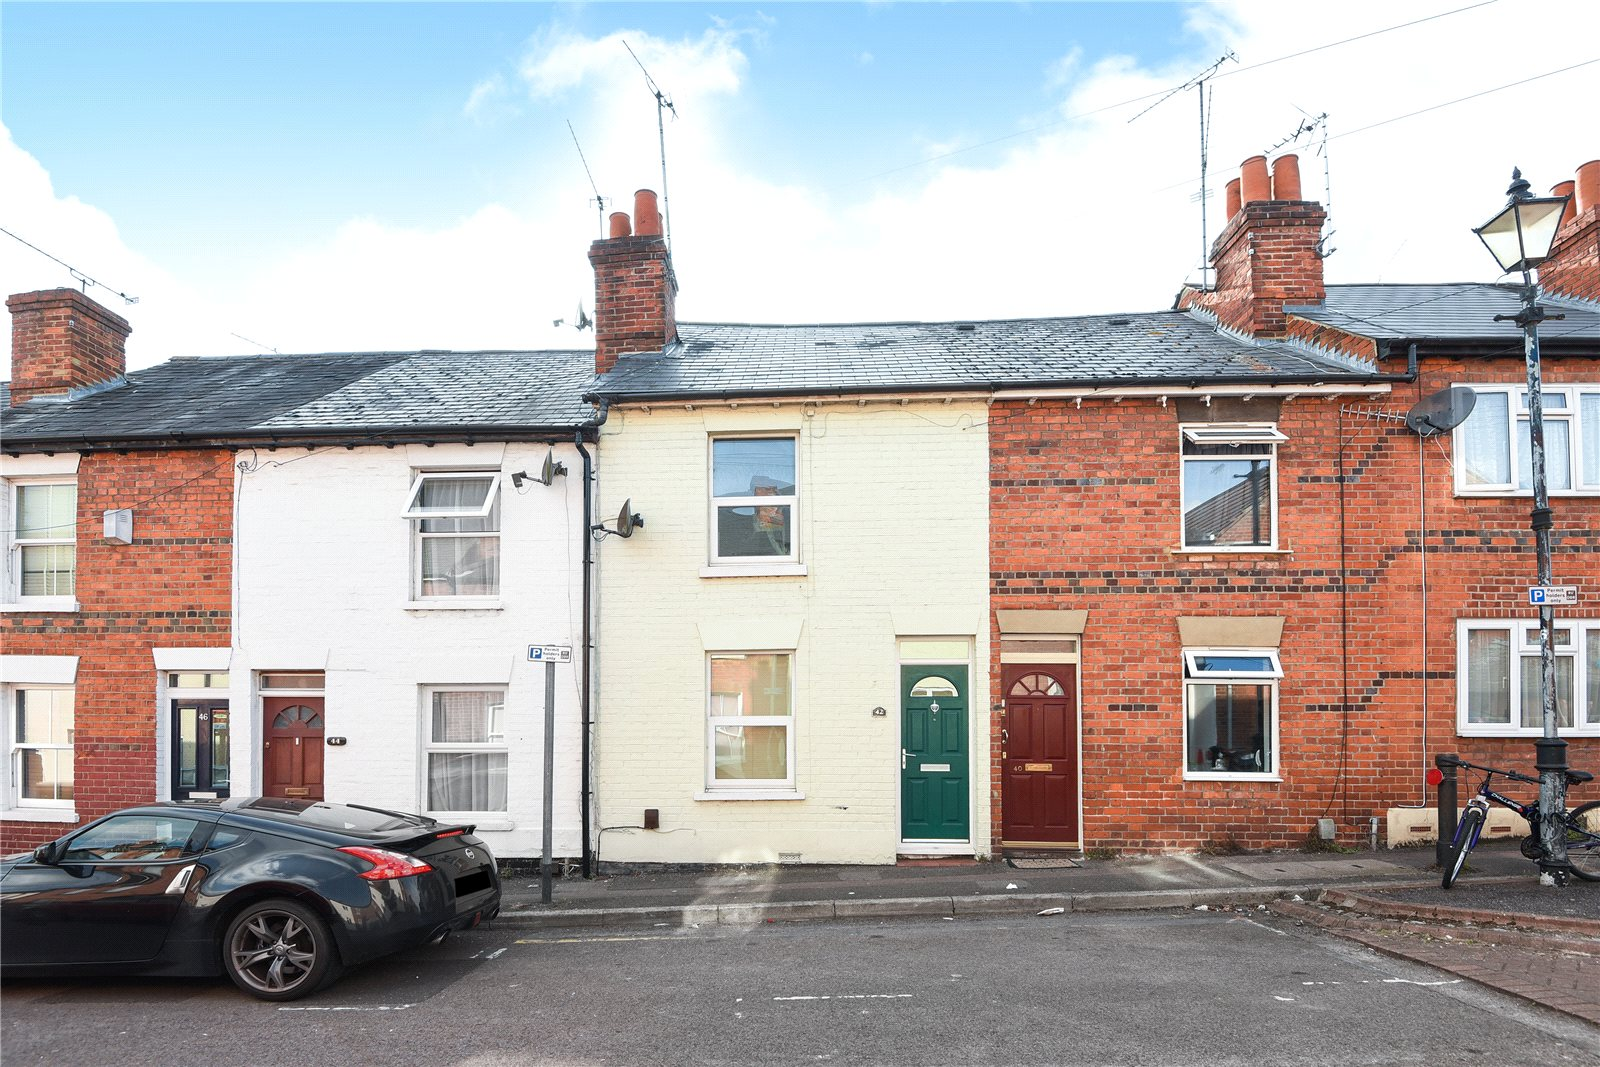 2 Bedrooms Terraced House for sale in Lower Field Road, Reading, Berkshire, RG1